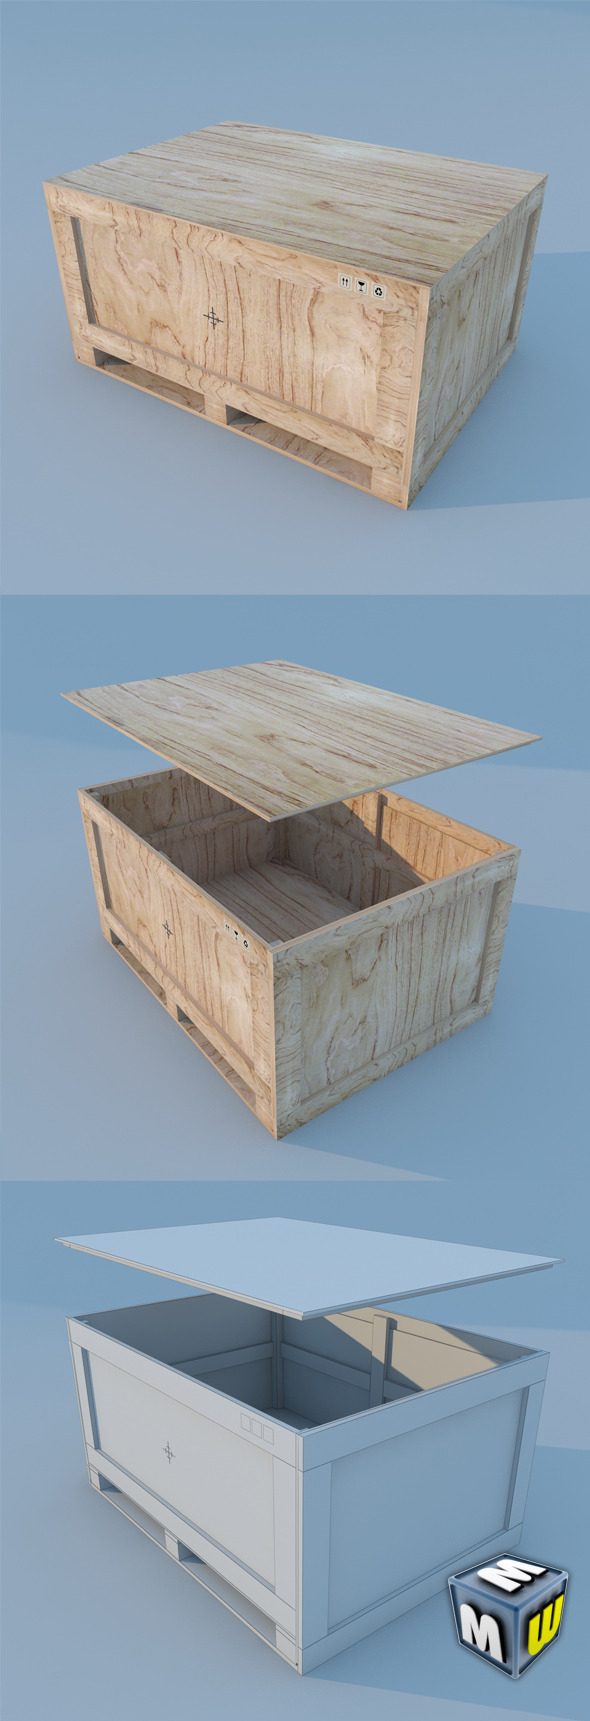 Wood Container MAX 2011 - 3DOcean Item for Sale